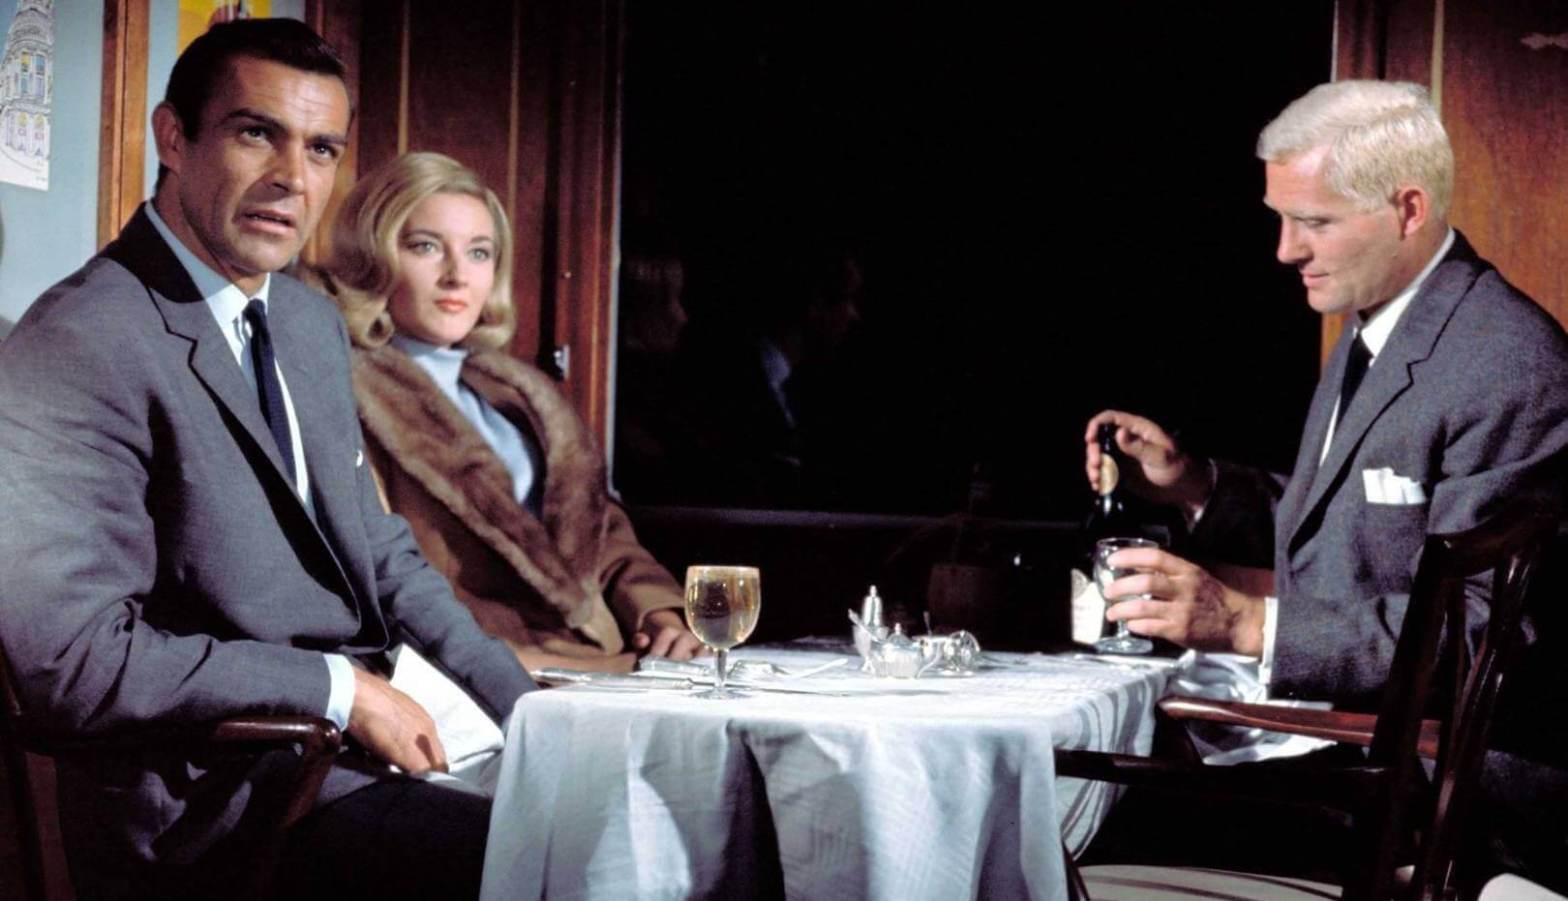 License to Review #2: From Russia with Love (1963) – A Fistful of Film